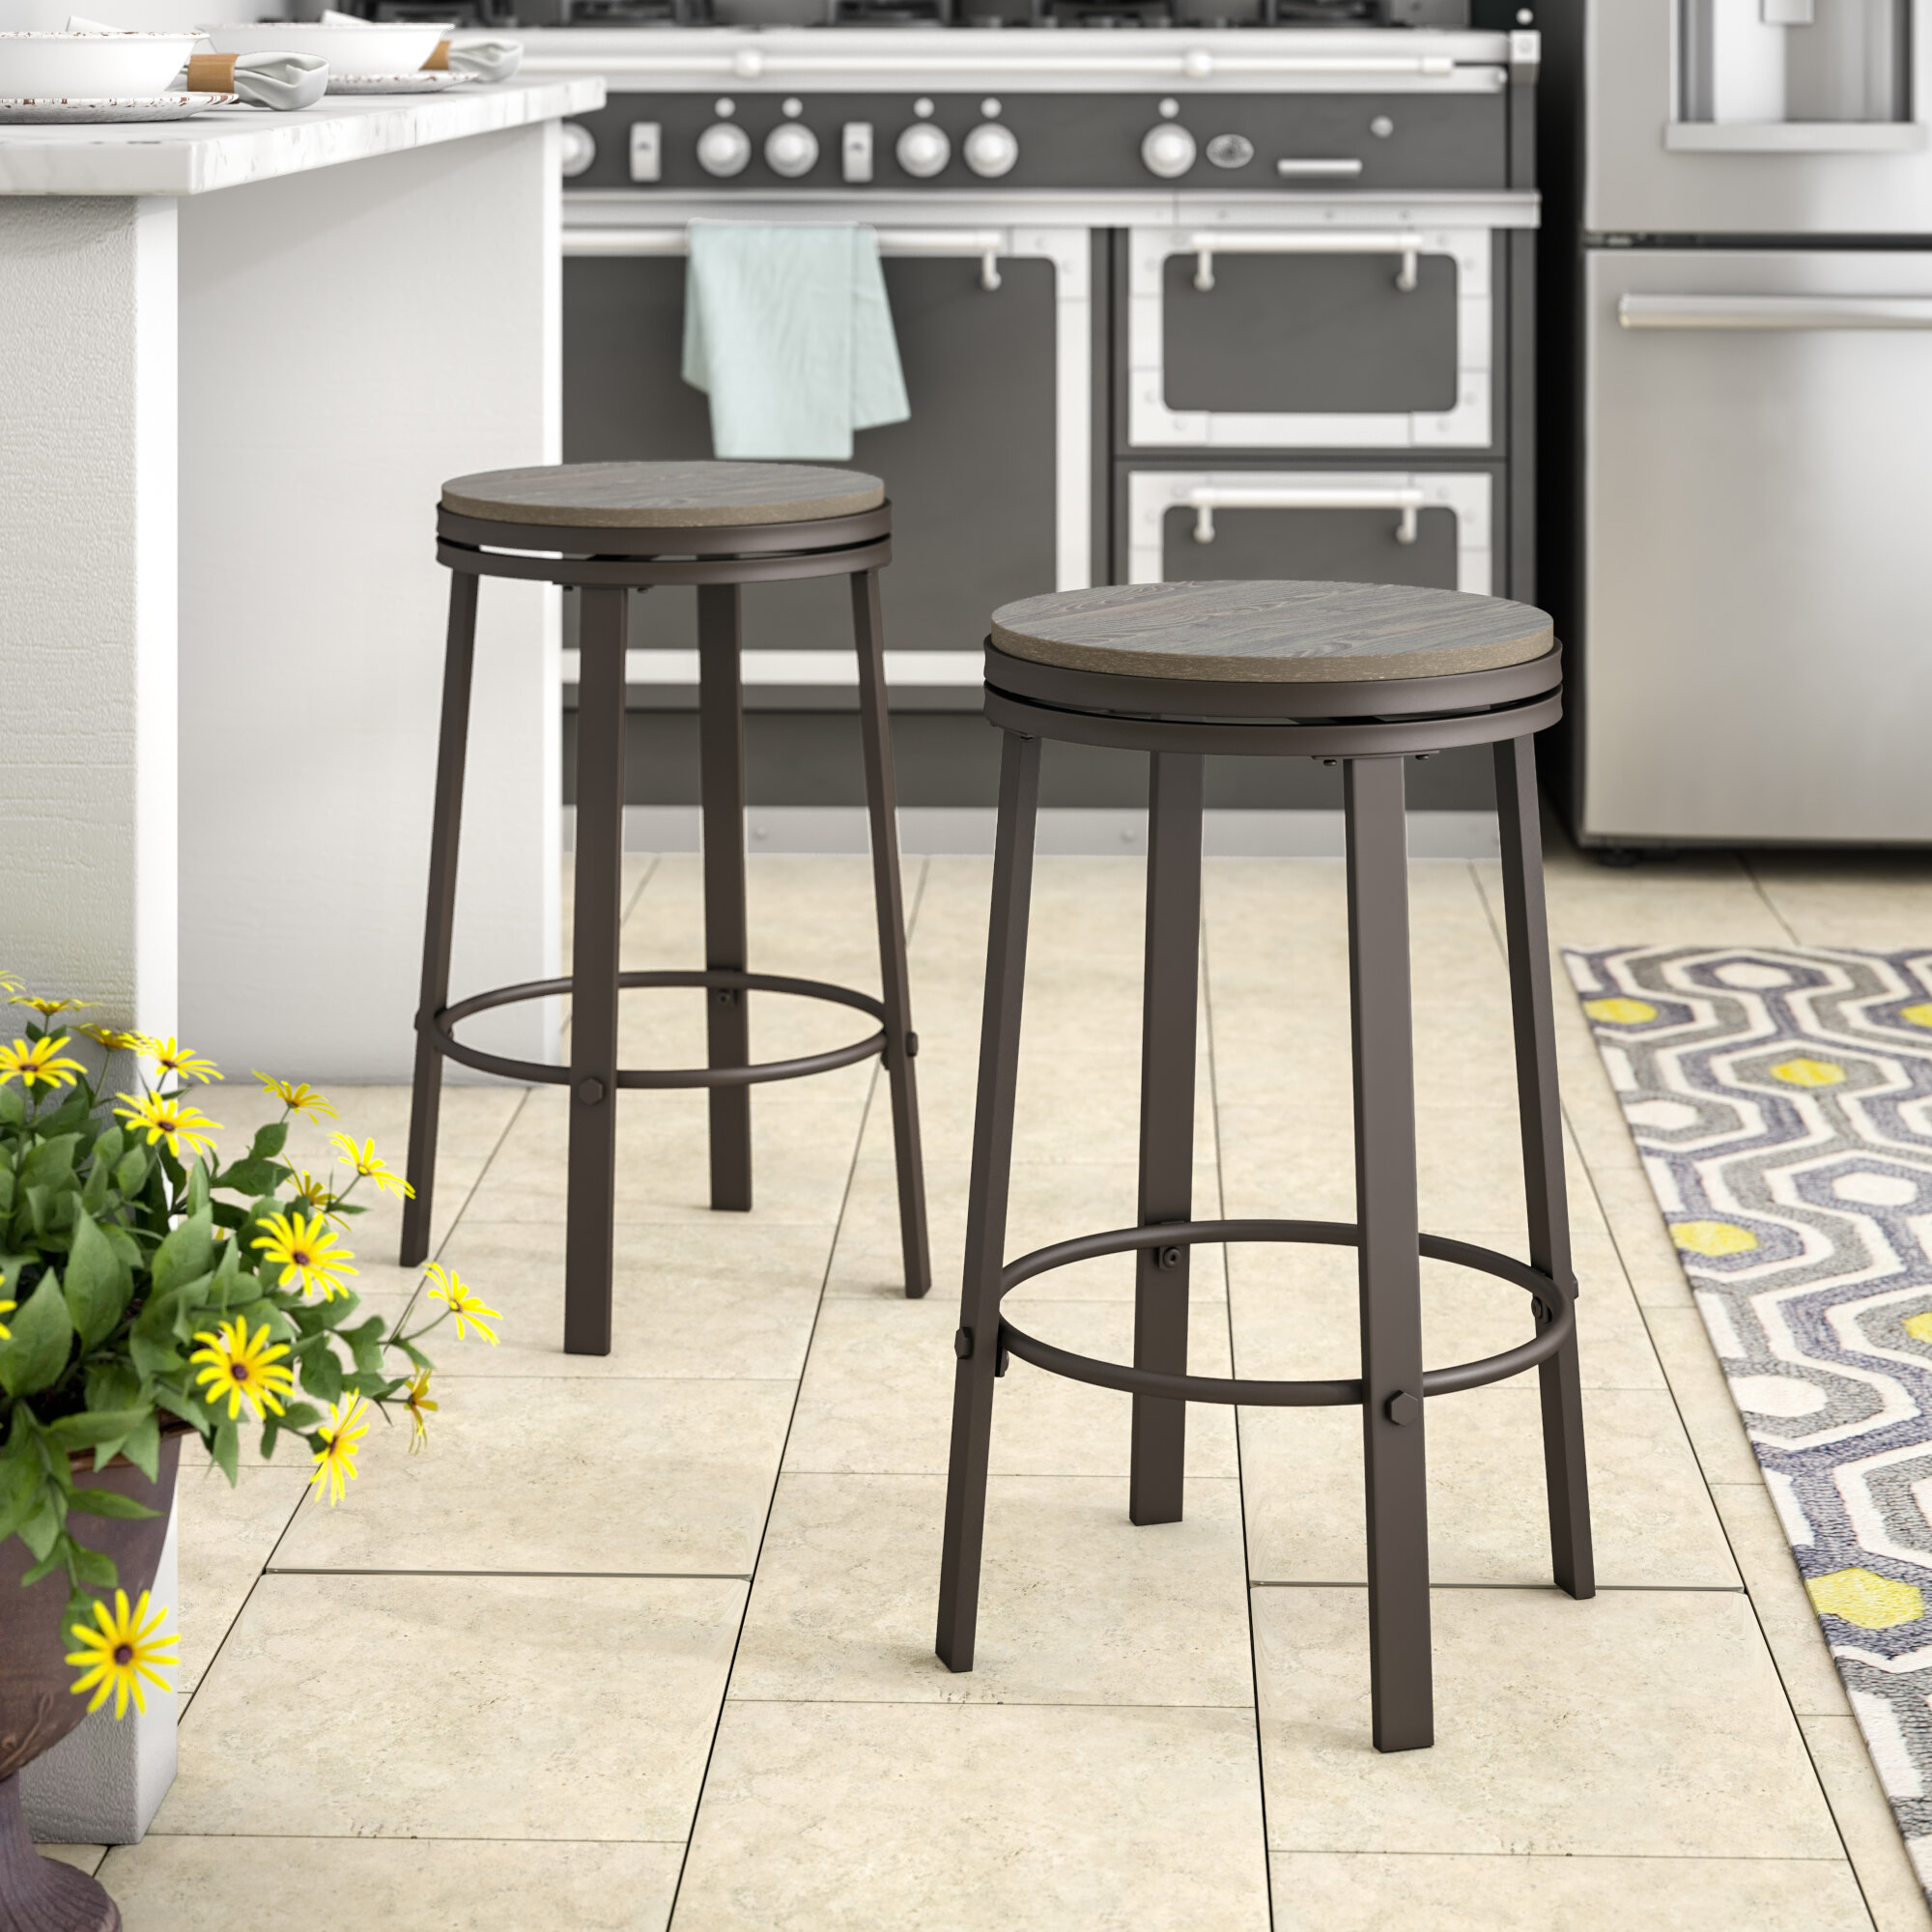 Image of: Backless Bar Stools Counter Stools You Ll Love In 2020 Wayfair